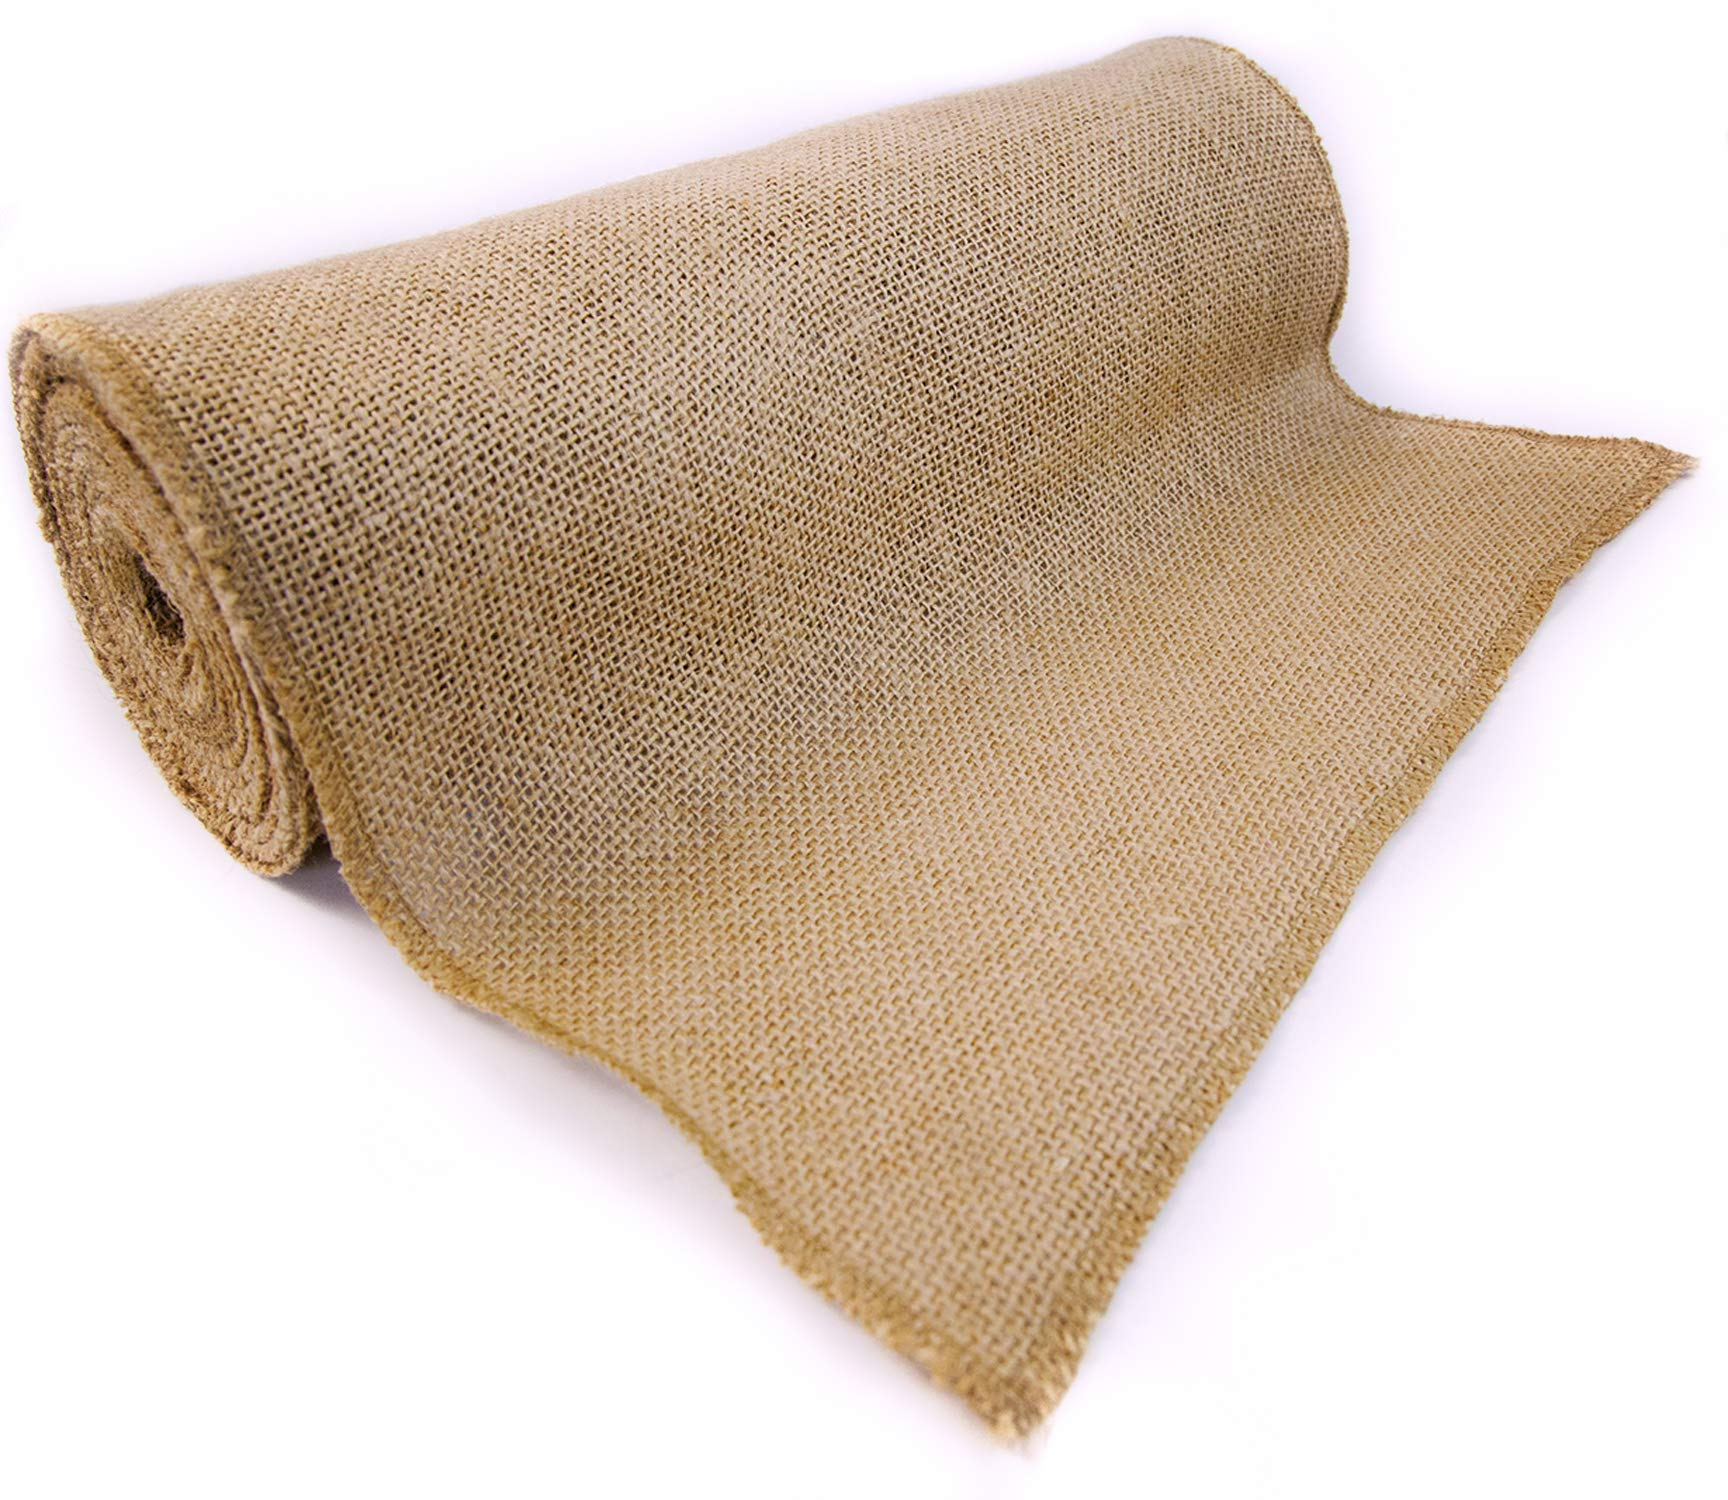 RichCraft 12'' x 10yd NO-FRAY Burlap Roll ~ Table Runner Fabric with Finished Edges. Perfect for Weddings, Placemat, Crafts. Decorate Without The Mess!